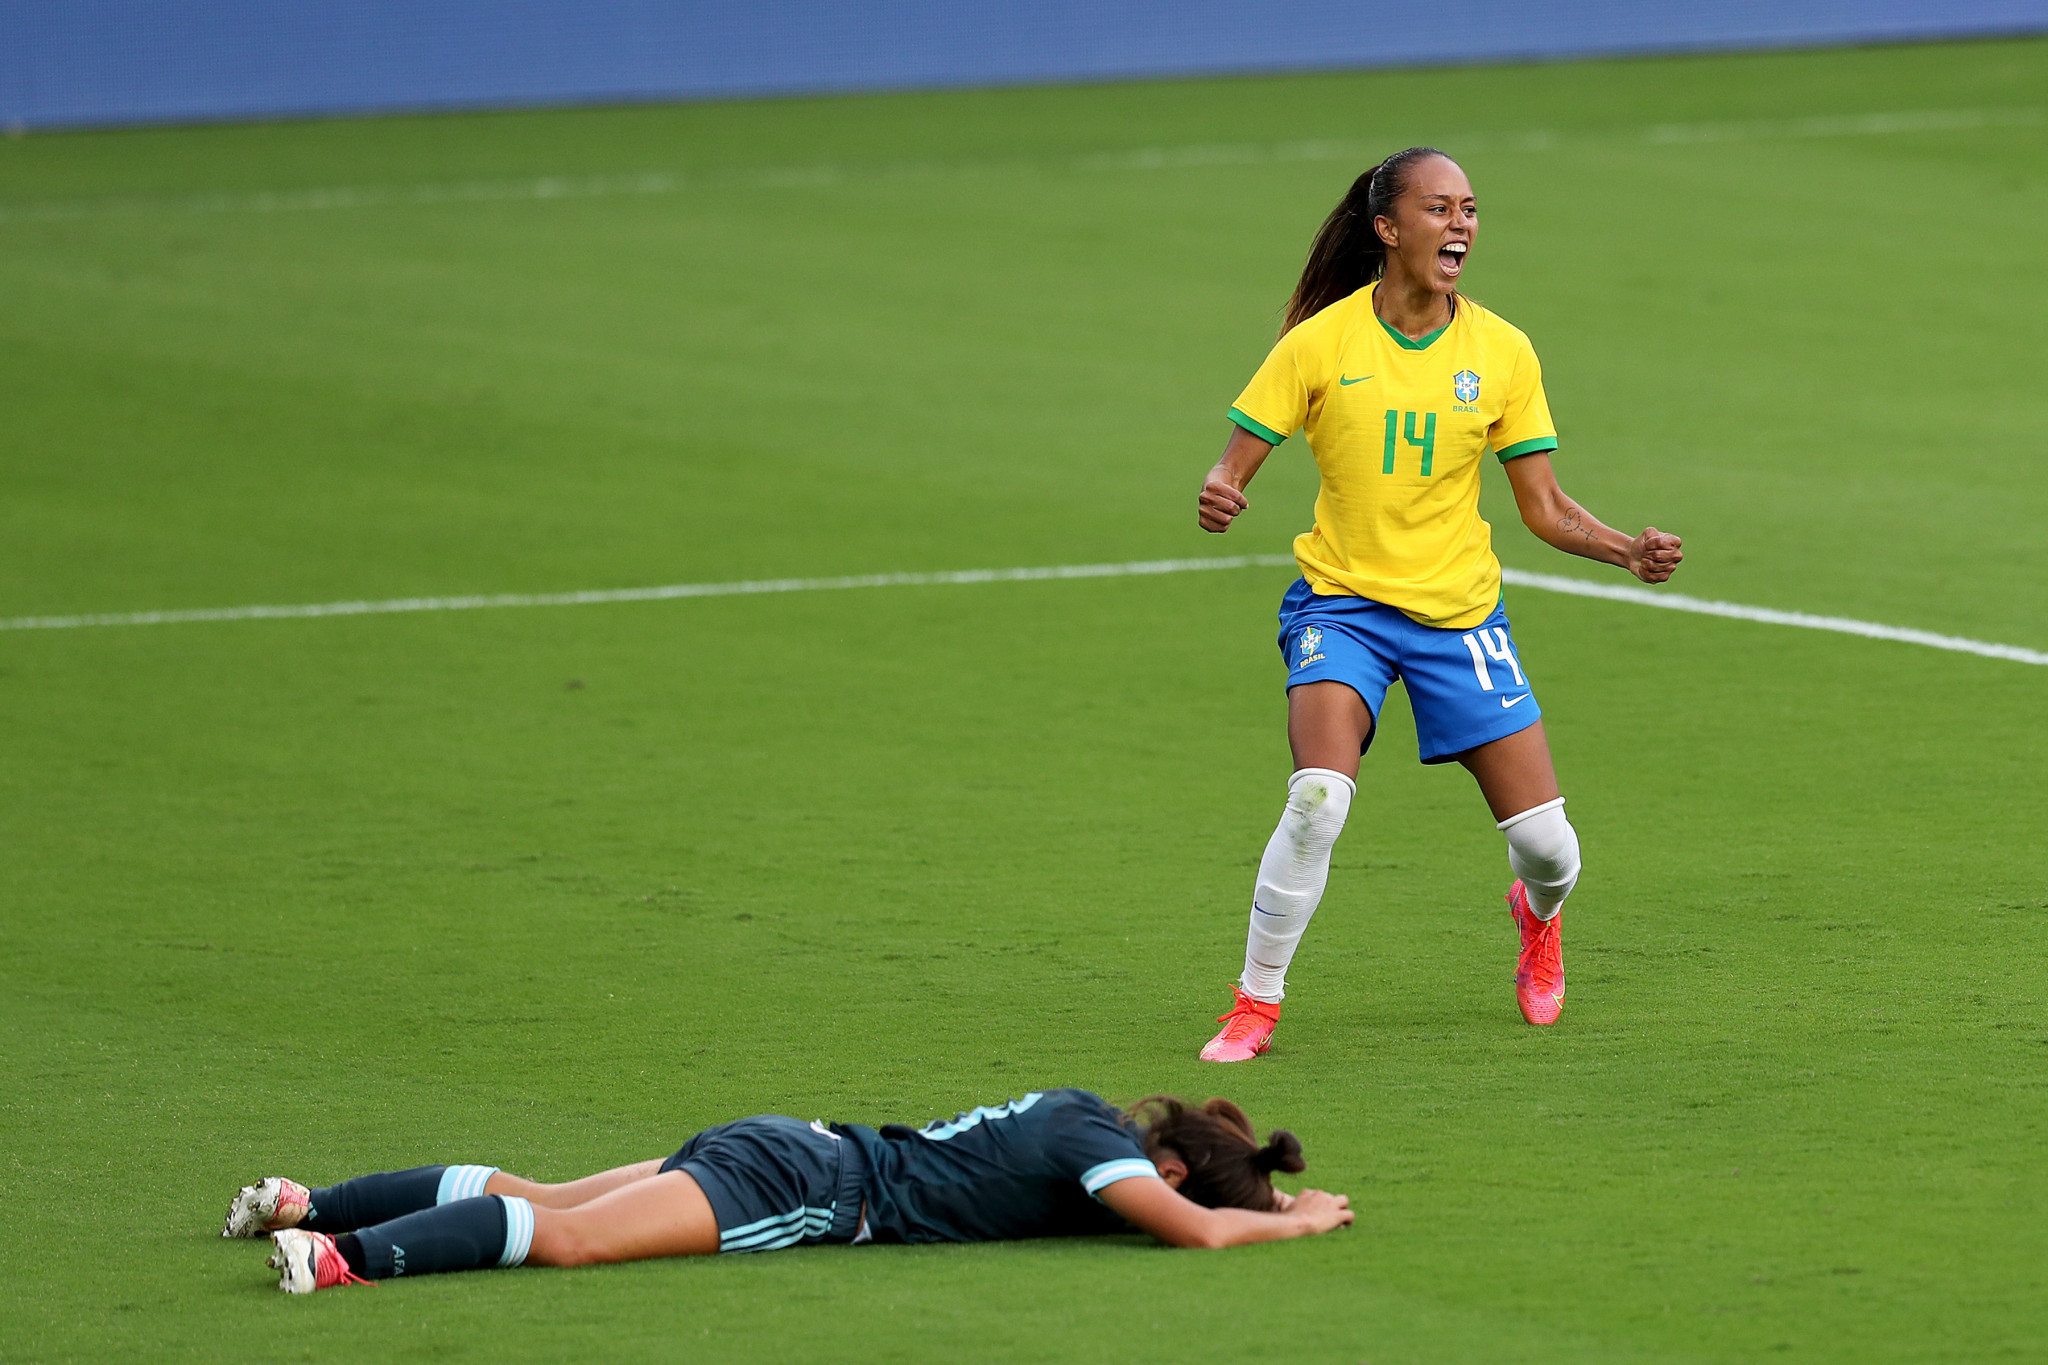 Adriana won a penalty and scored her first Brazil goal in an impressive performance ©Getty Images